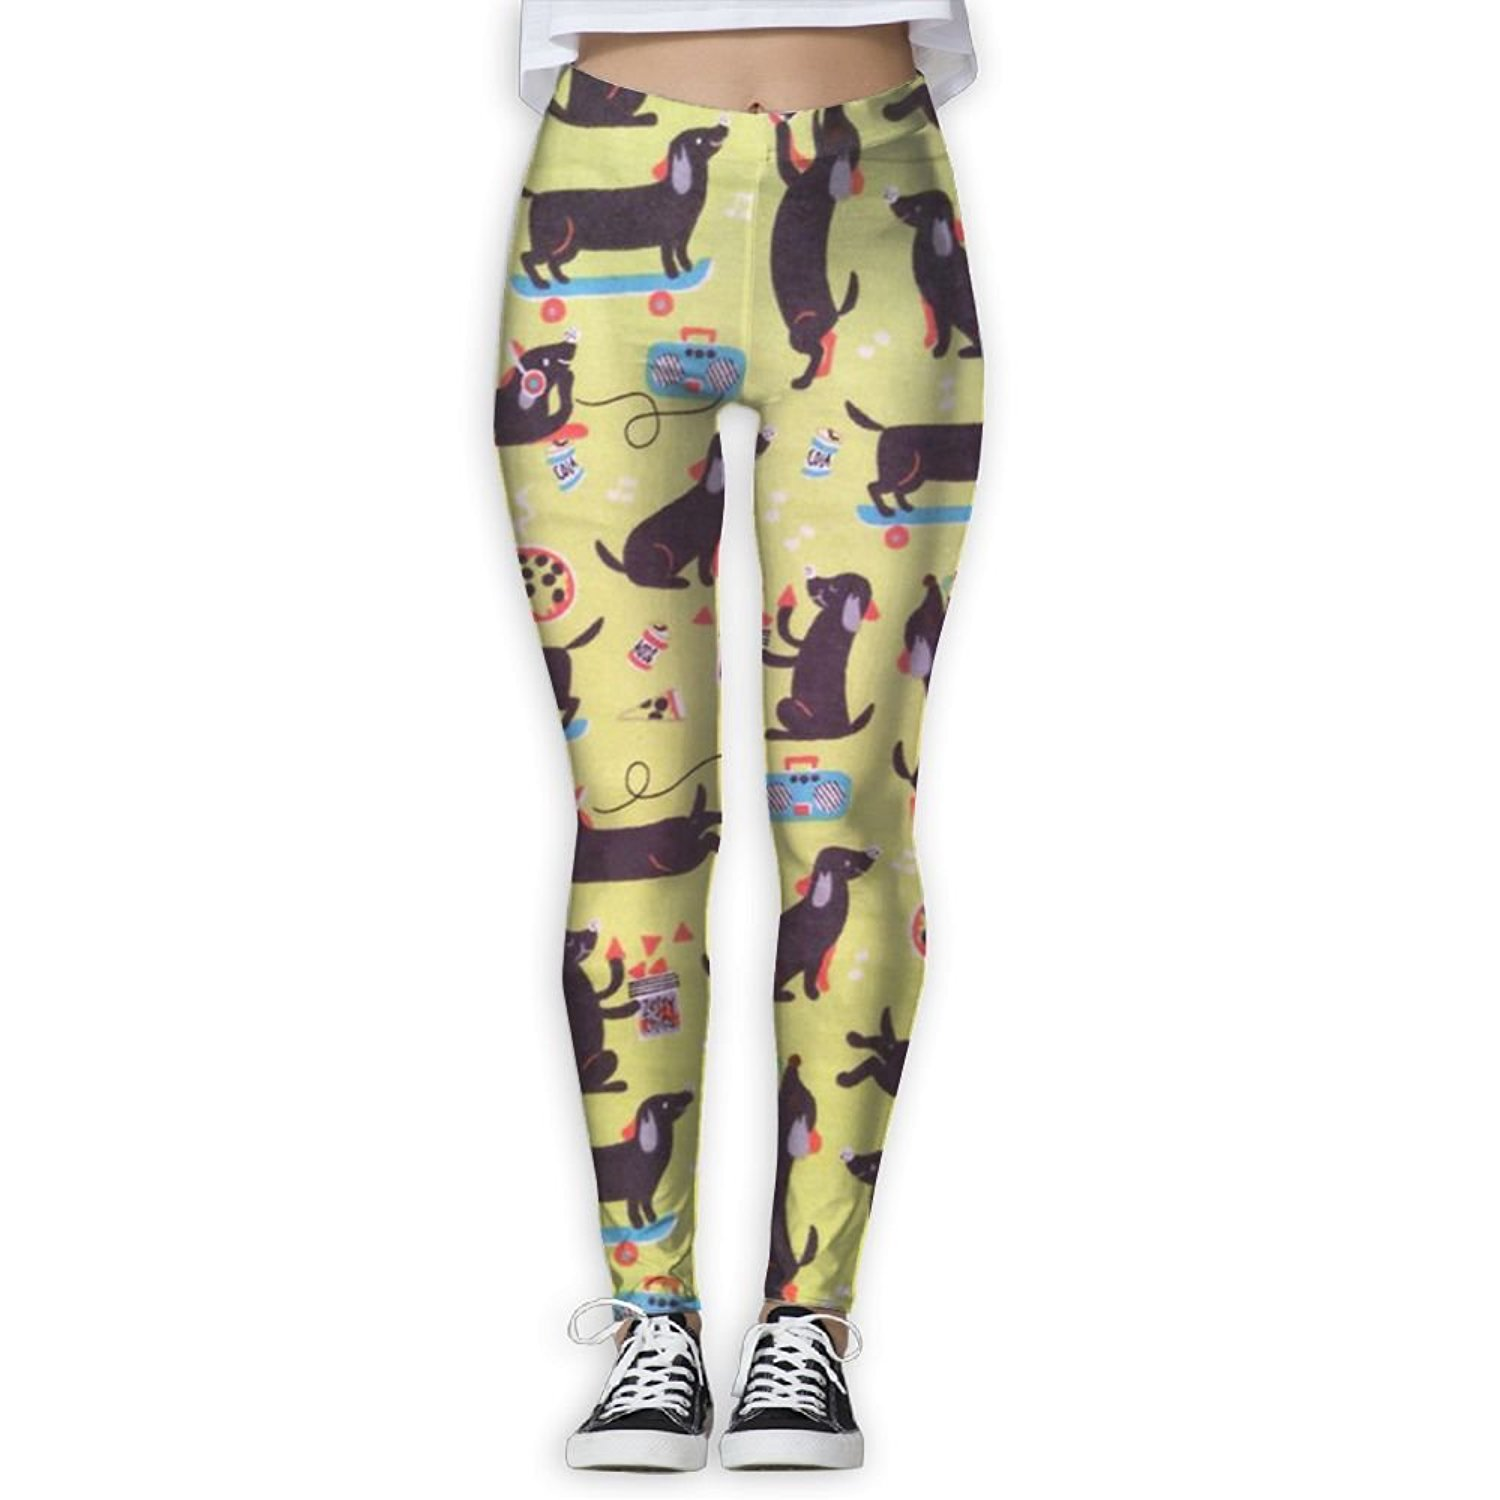 ba1c4adf7d306 Get Quotations · Virgo Sausage Dog Dachshund Cool Compression Pants/Yoga  Pants Workout Leggings Women Girl Tall